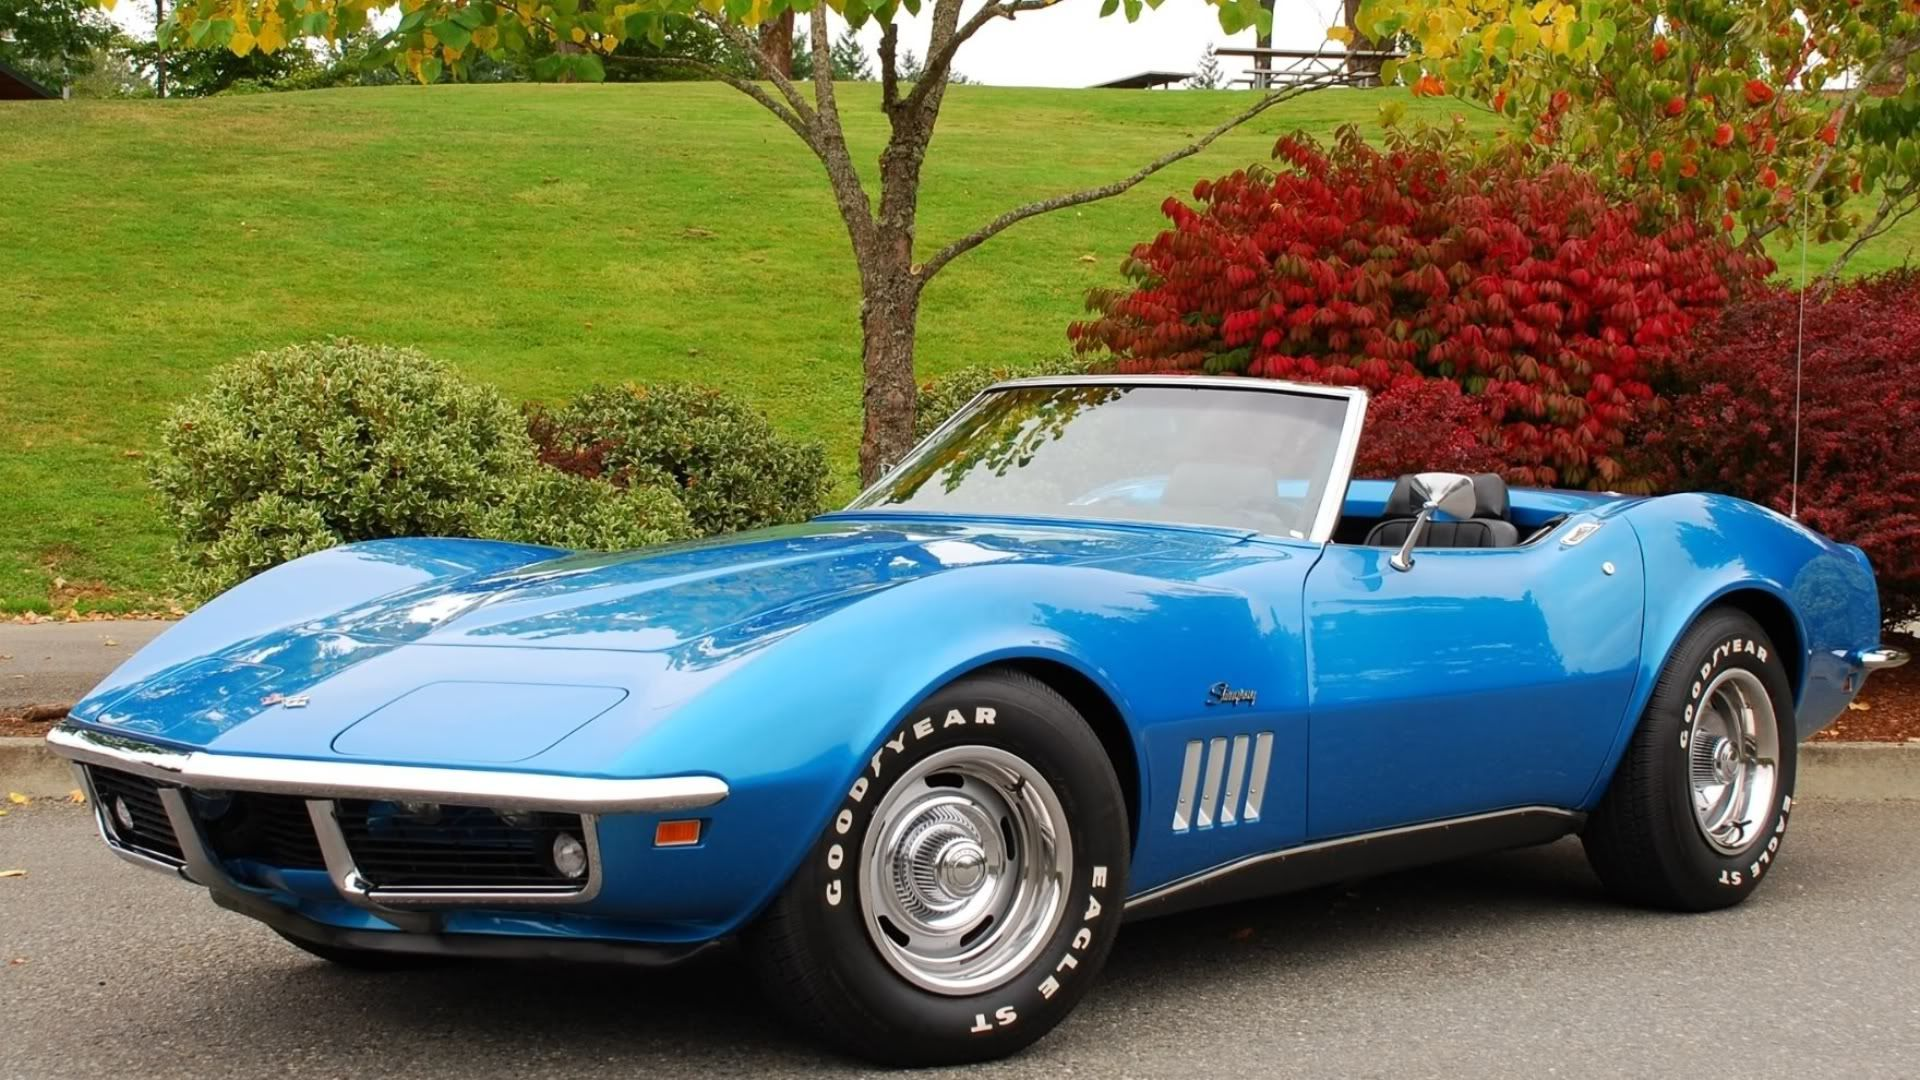 Corvette Love This Car Always Have And Will